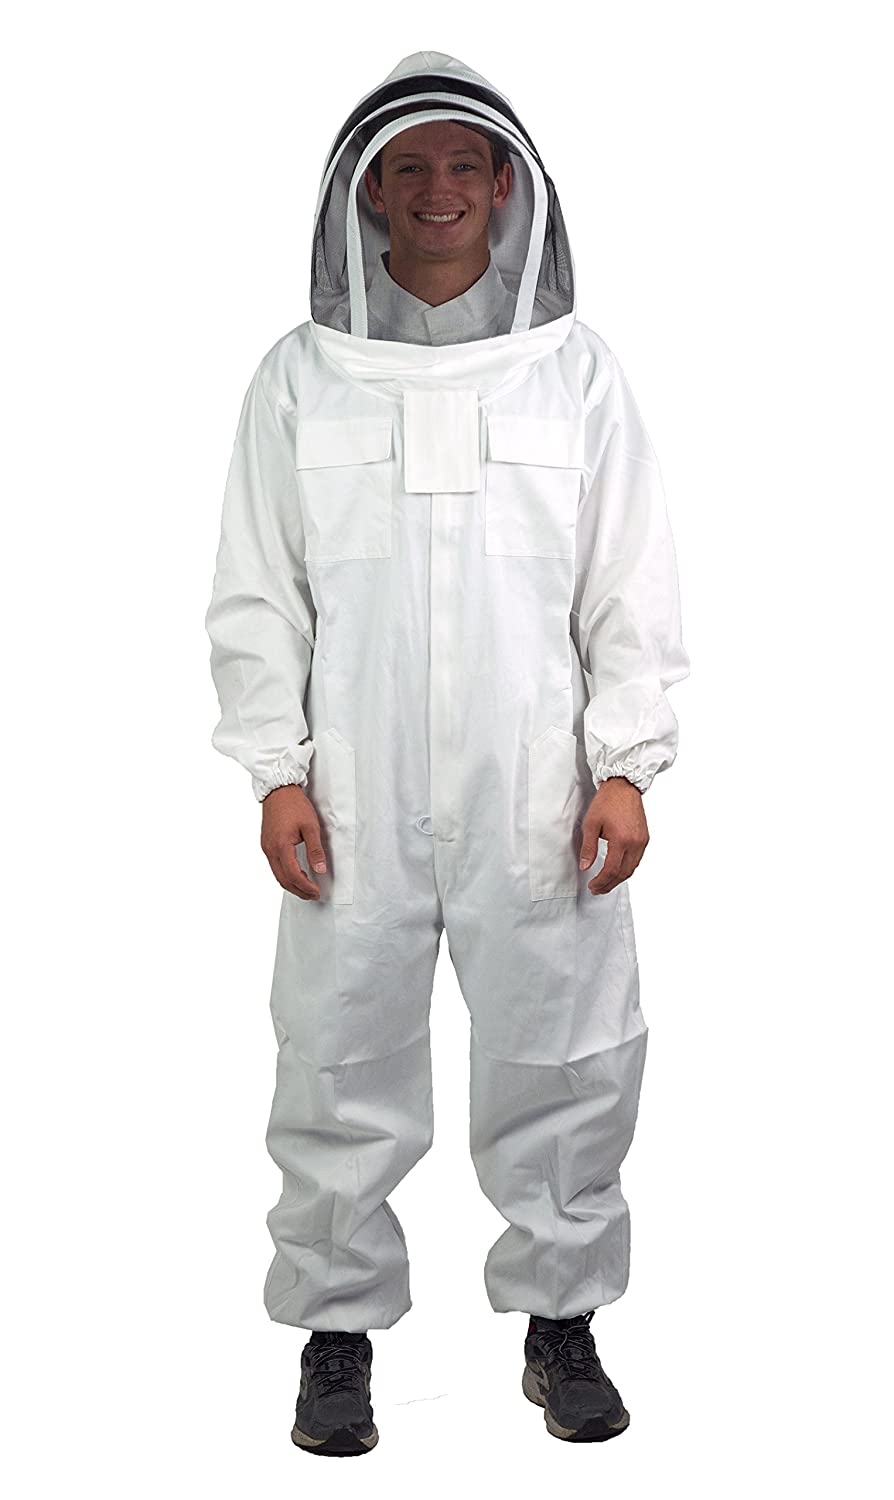 VIVO New Professional Large Cotton Full Body Beekeeping Bee Keeping Suit, with Veil Hood By (BEE-V106)